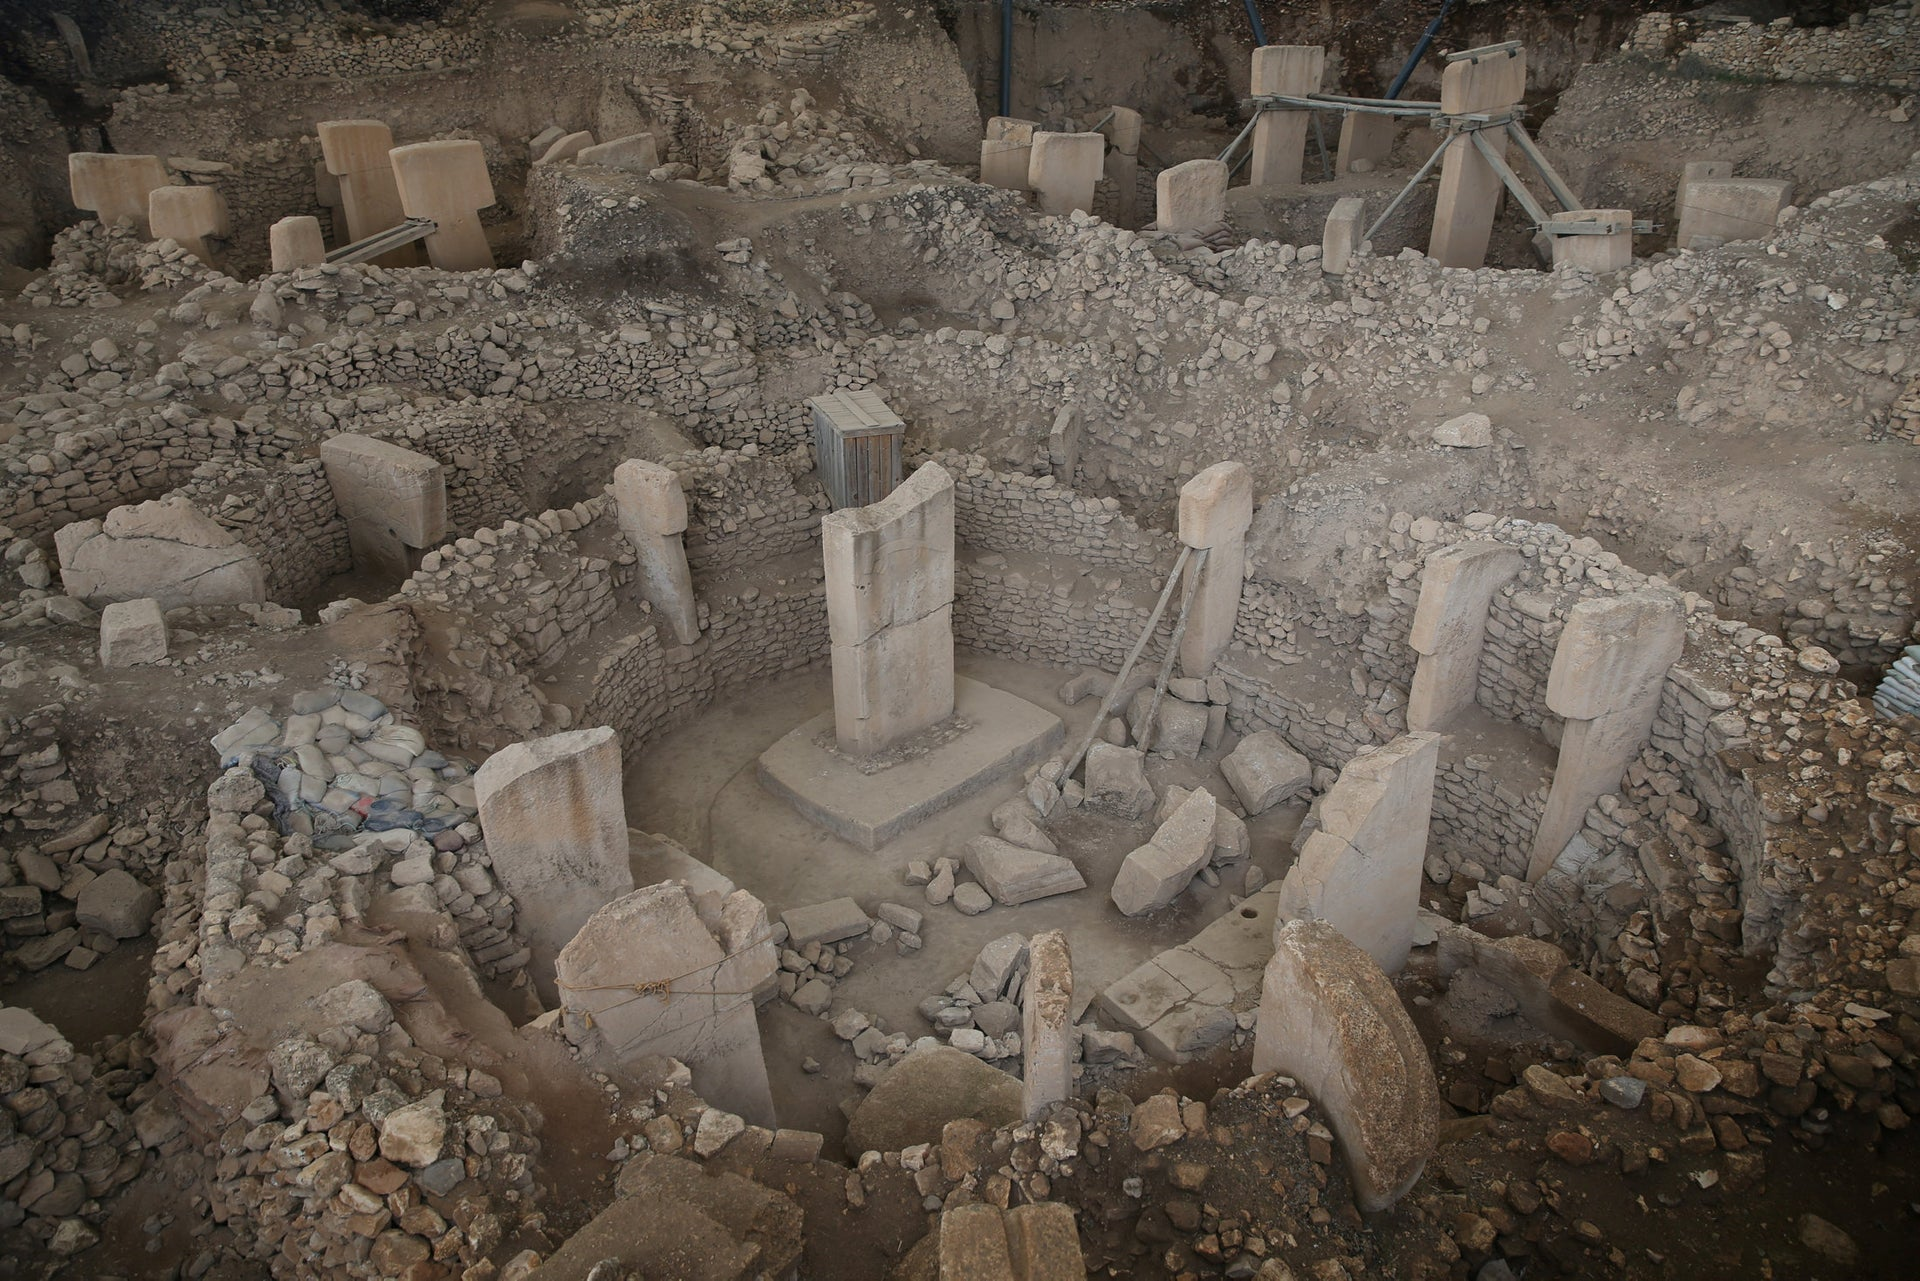 Potbelly Hill (Gobekli Tepe), which is known as the oldest Temple Center in the UNESCO's World Heritage Tentative List, in Turkey's southeastern province Sanliurfa on February 28, 2018.